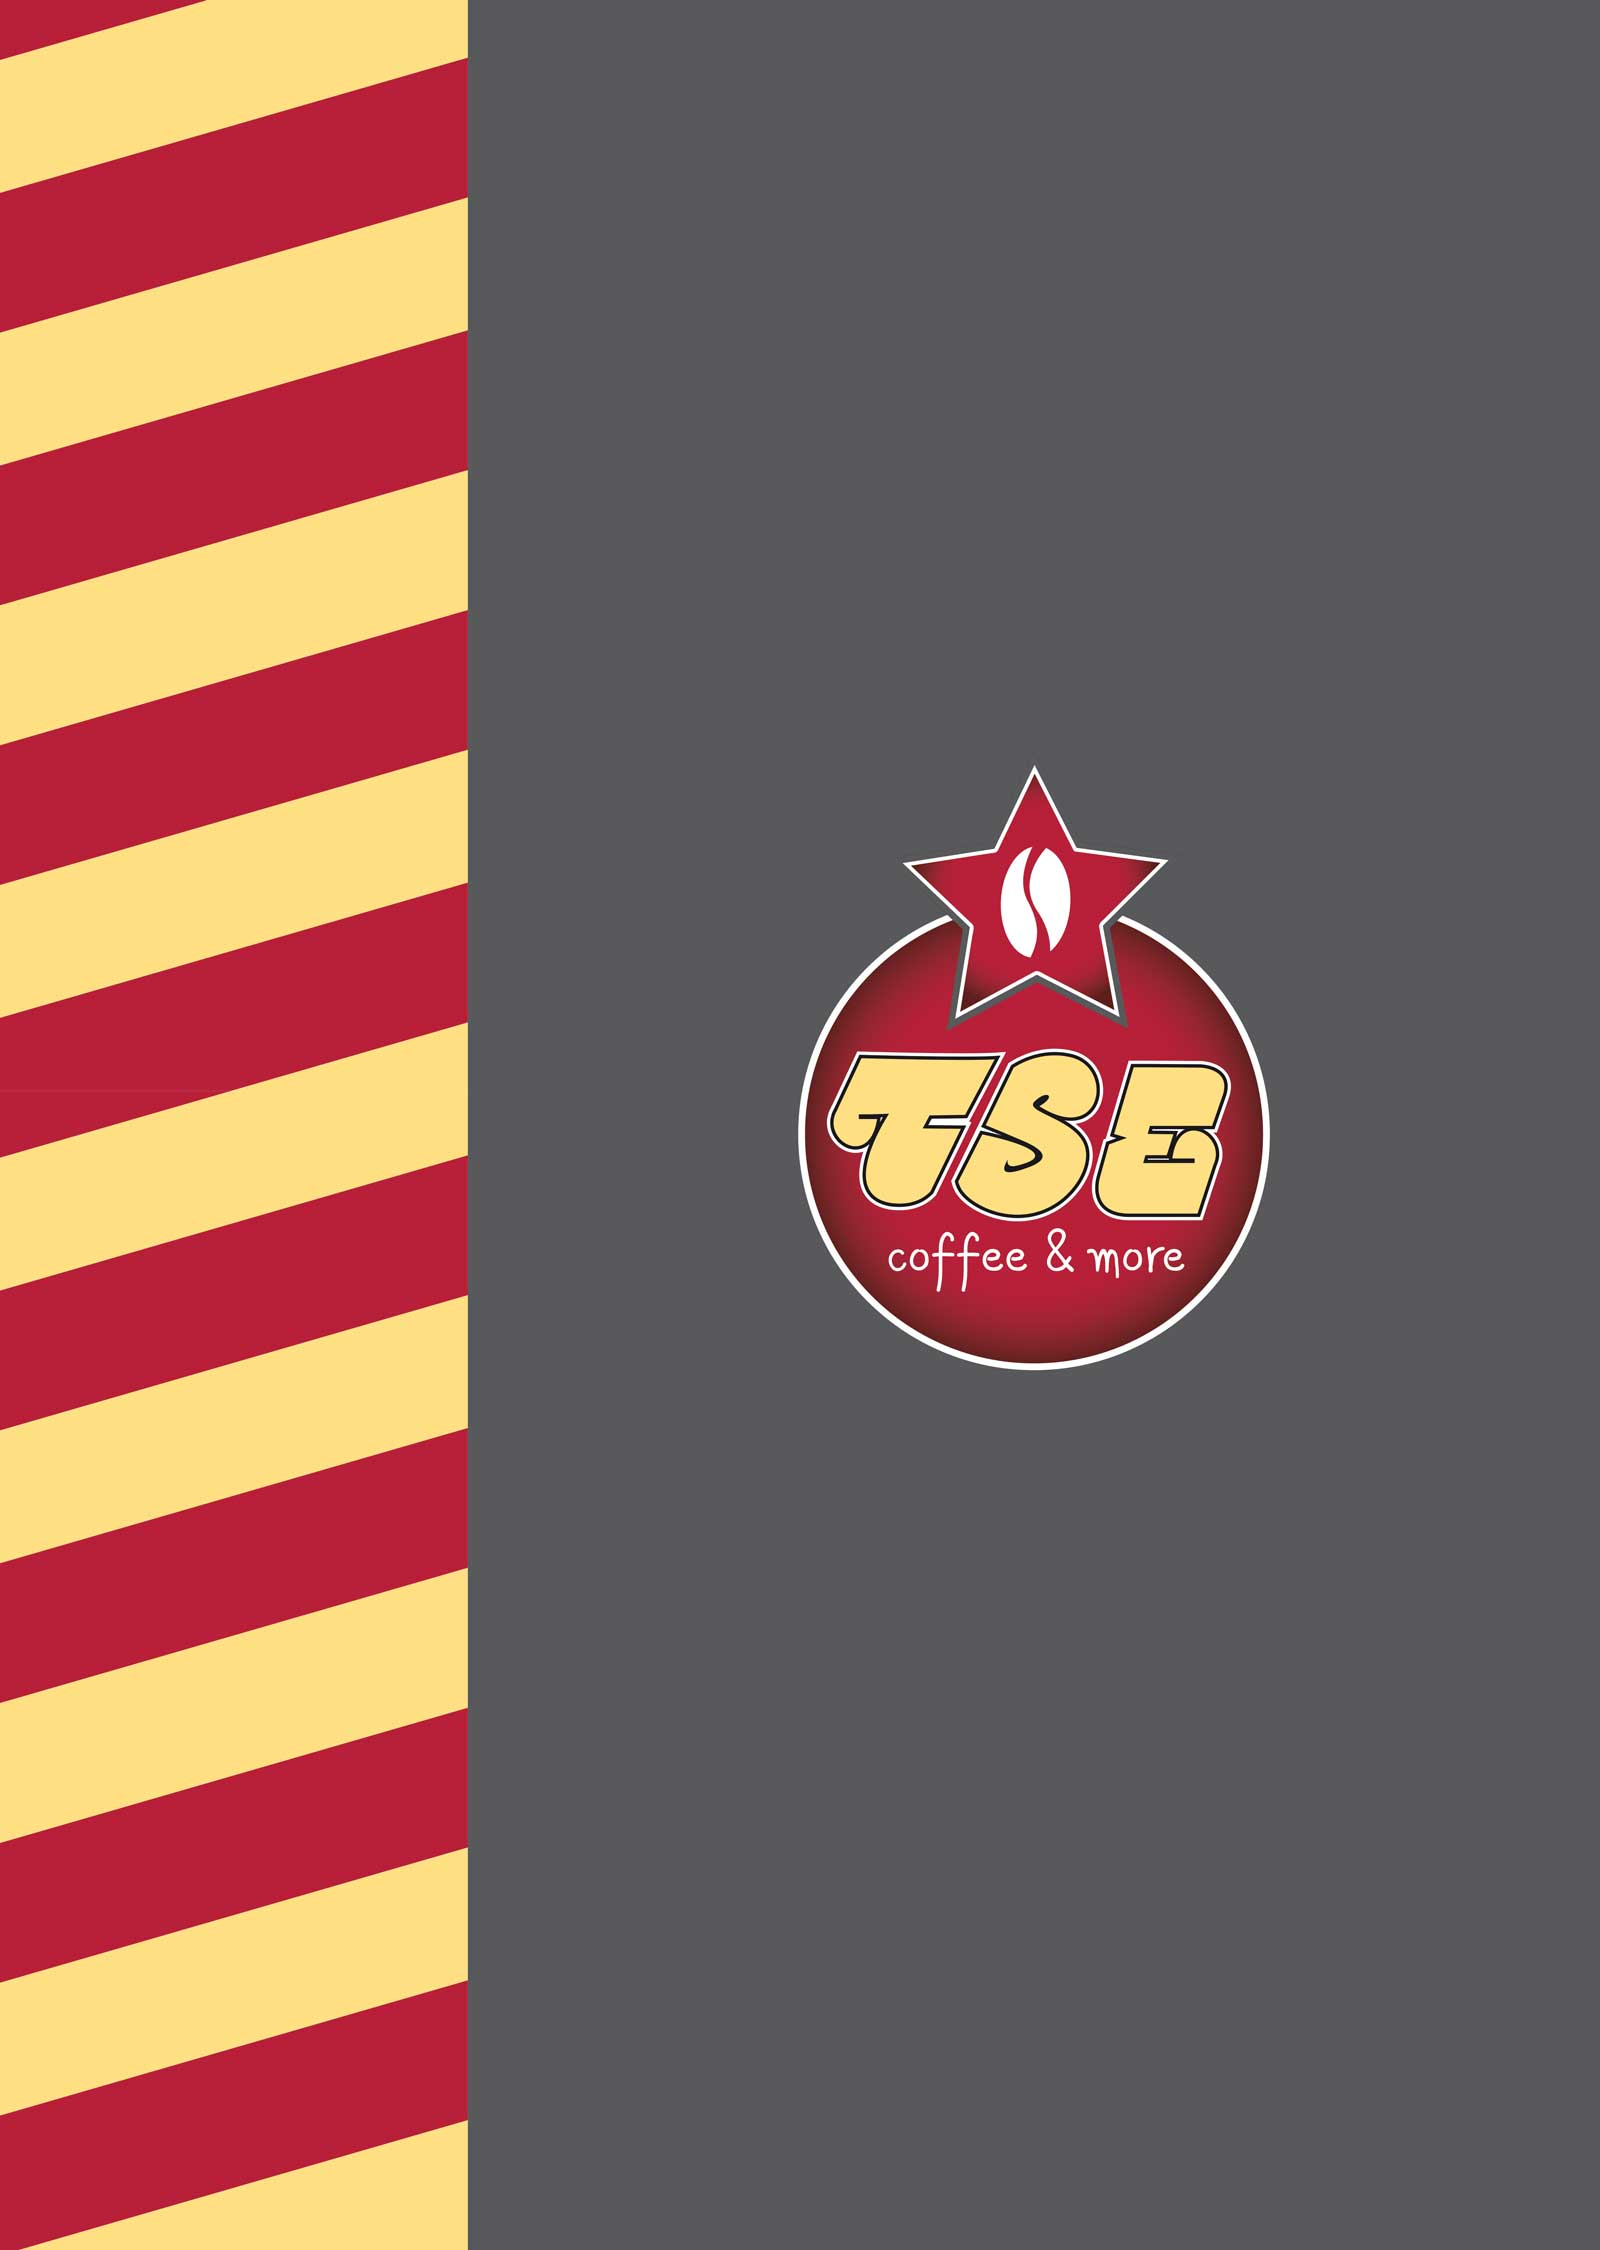 TSE COFFEE & MORE